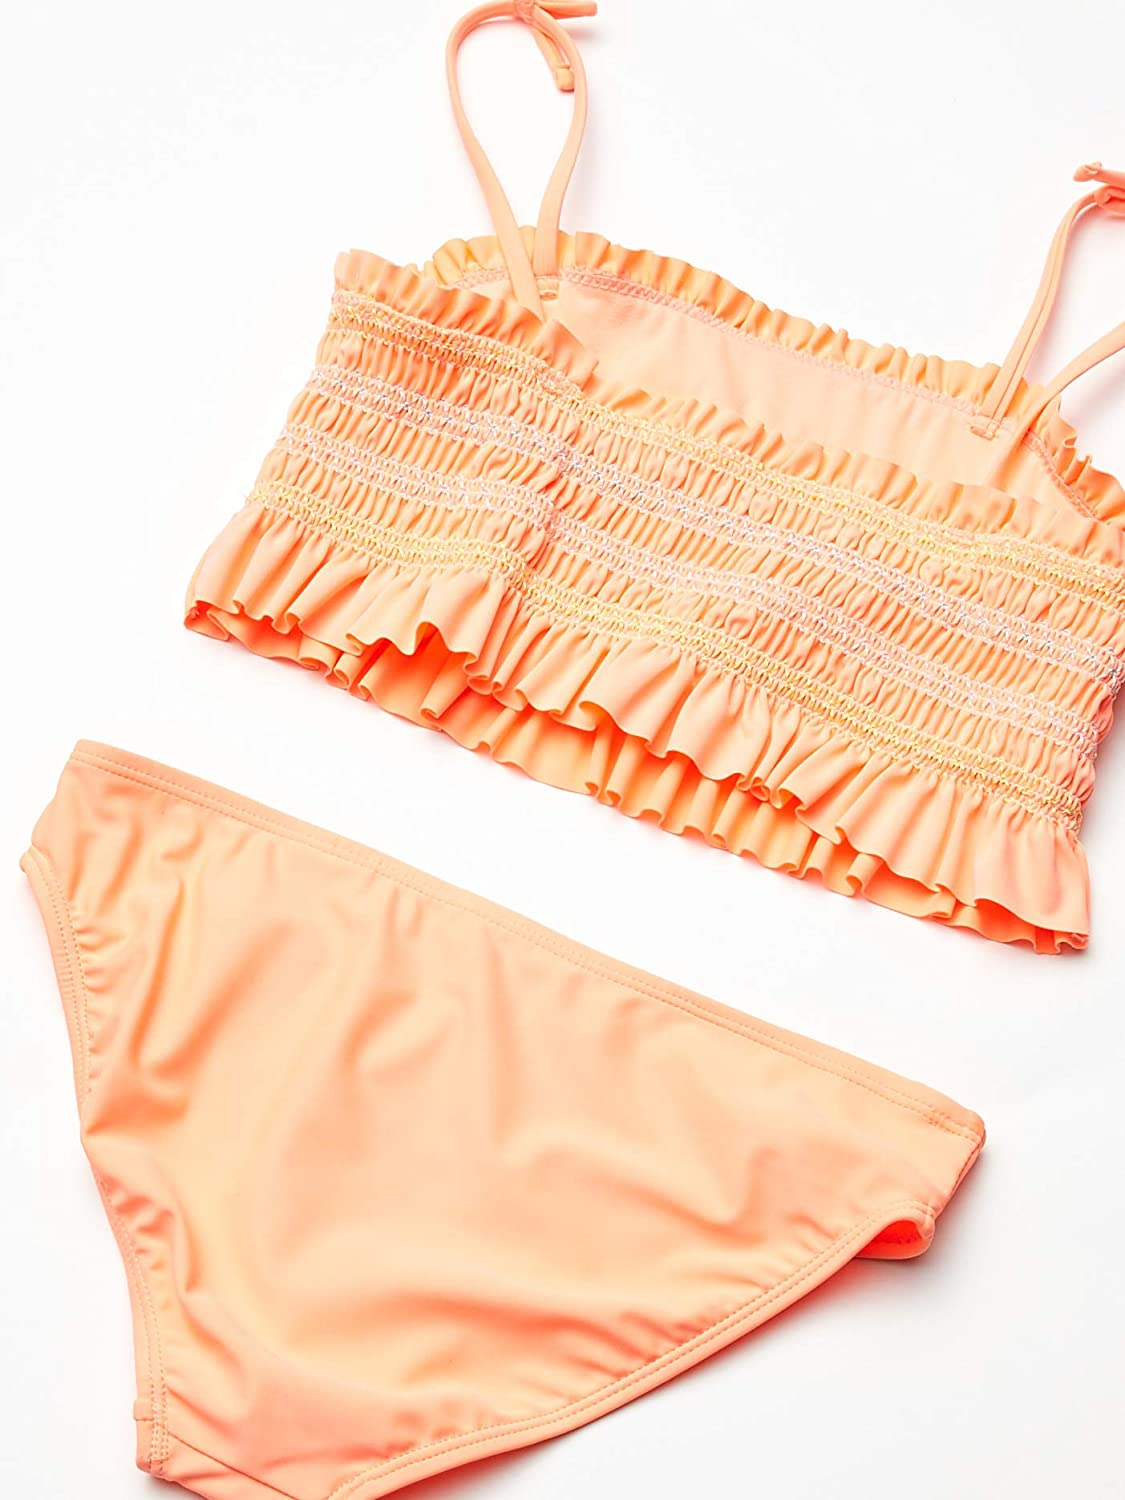 Details about  /Lucky Brand Sun Dress Lace Panty 2 Pc 12 M Bright Pink $44 Sleeveless NWT